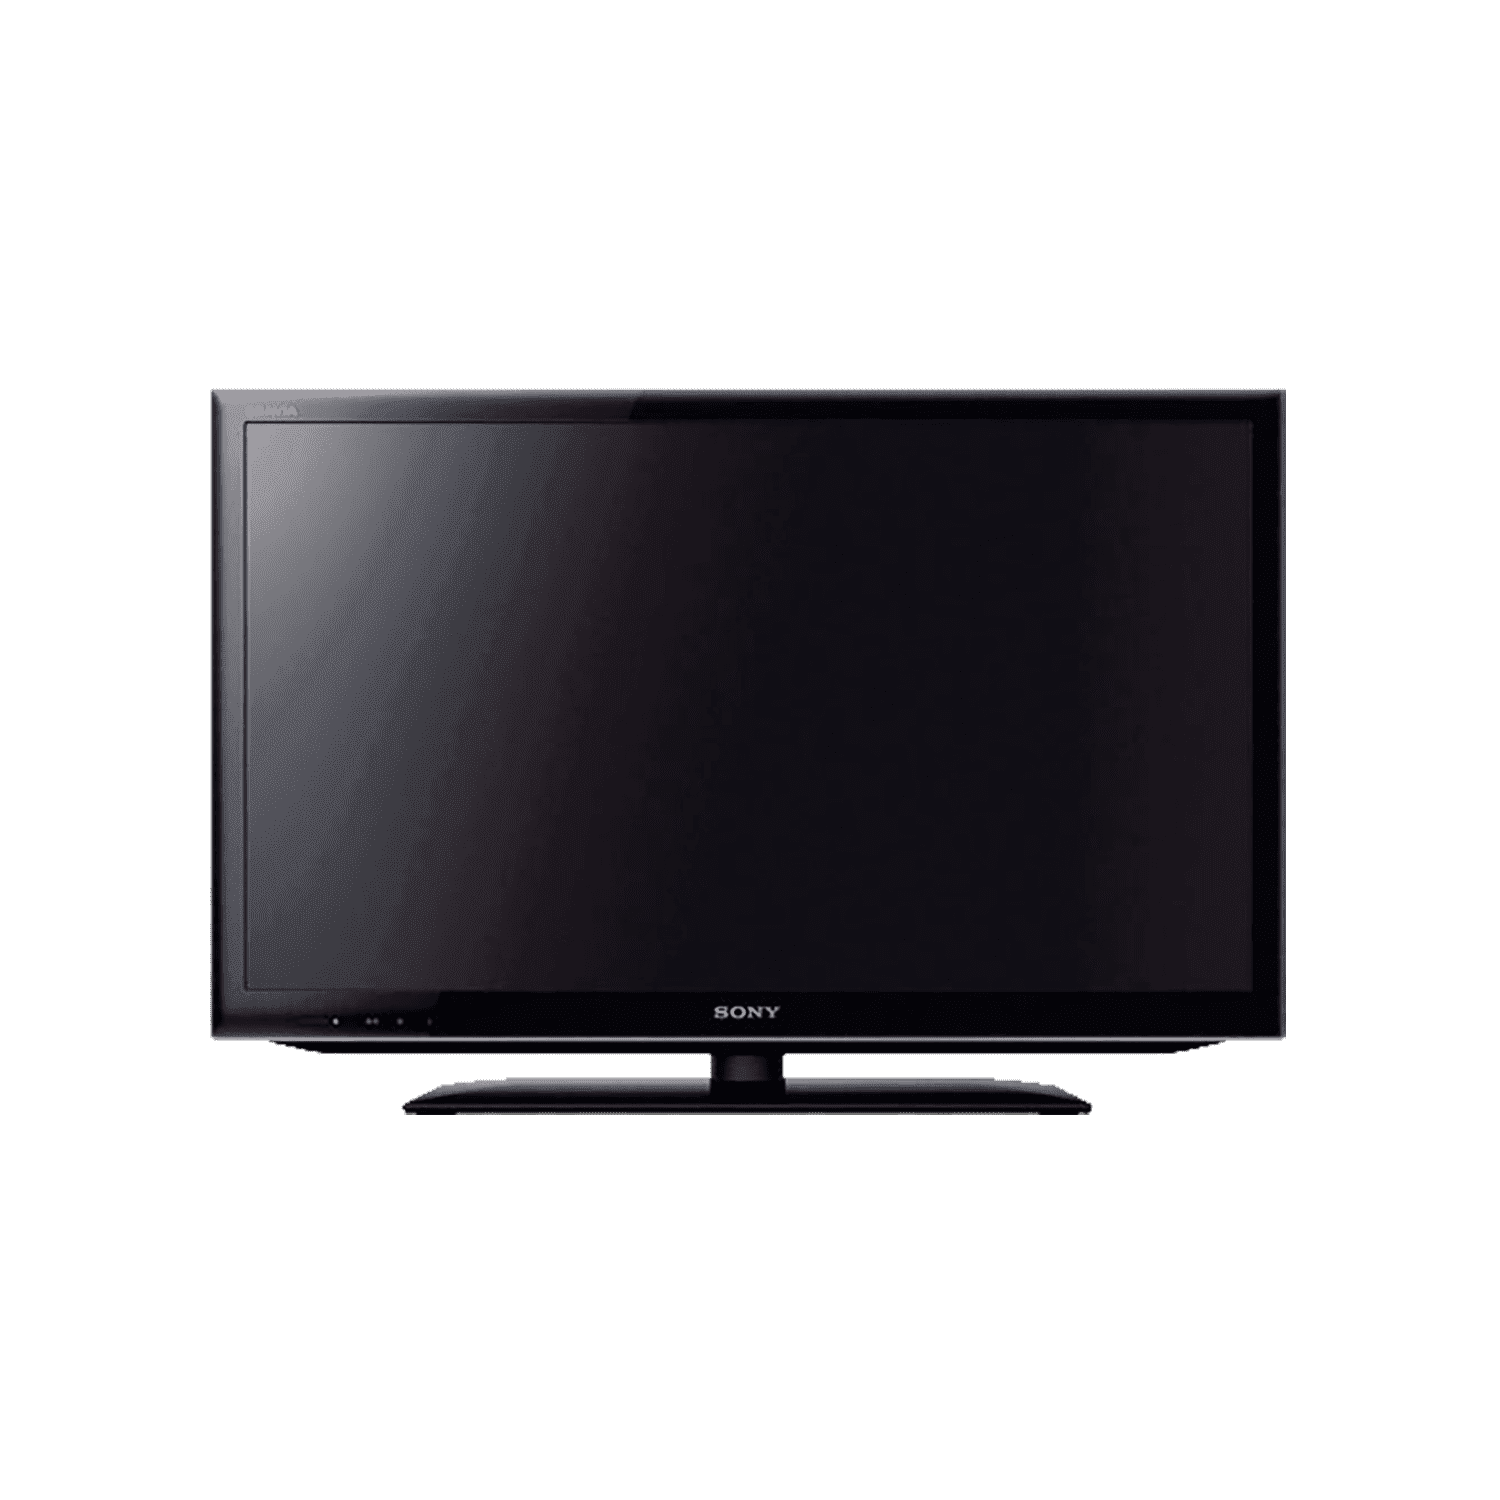 32 inch EX650 Series BRAVIA Full HD with Edge LED